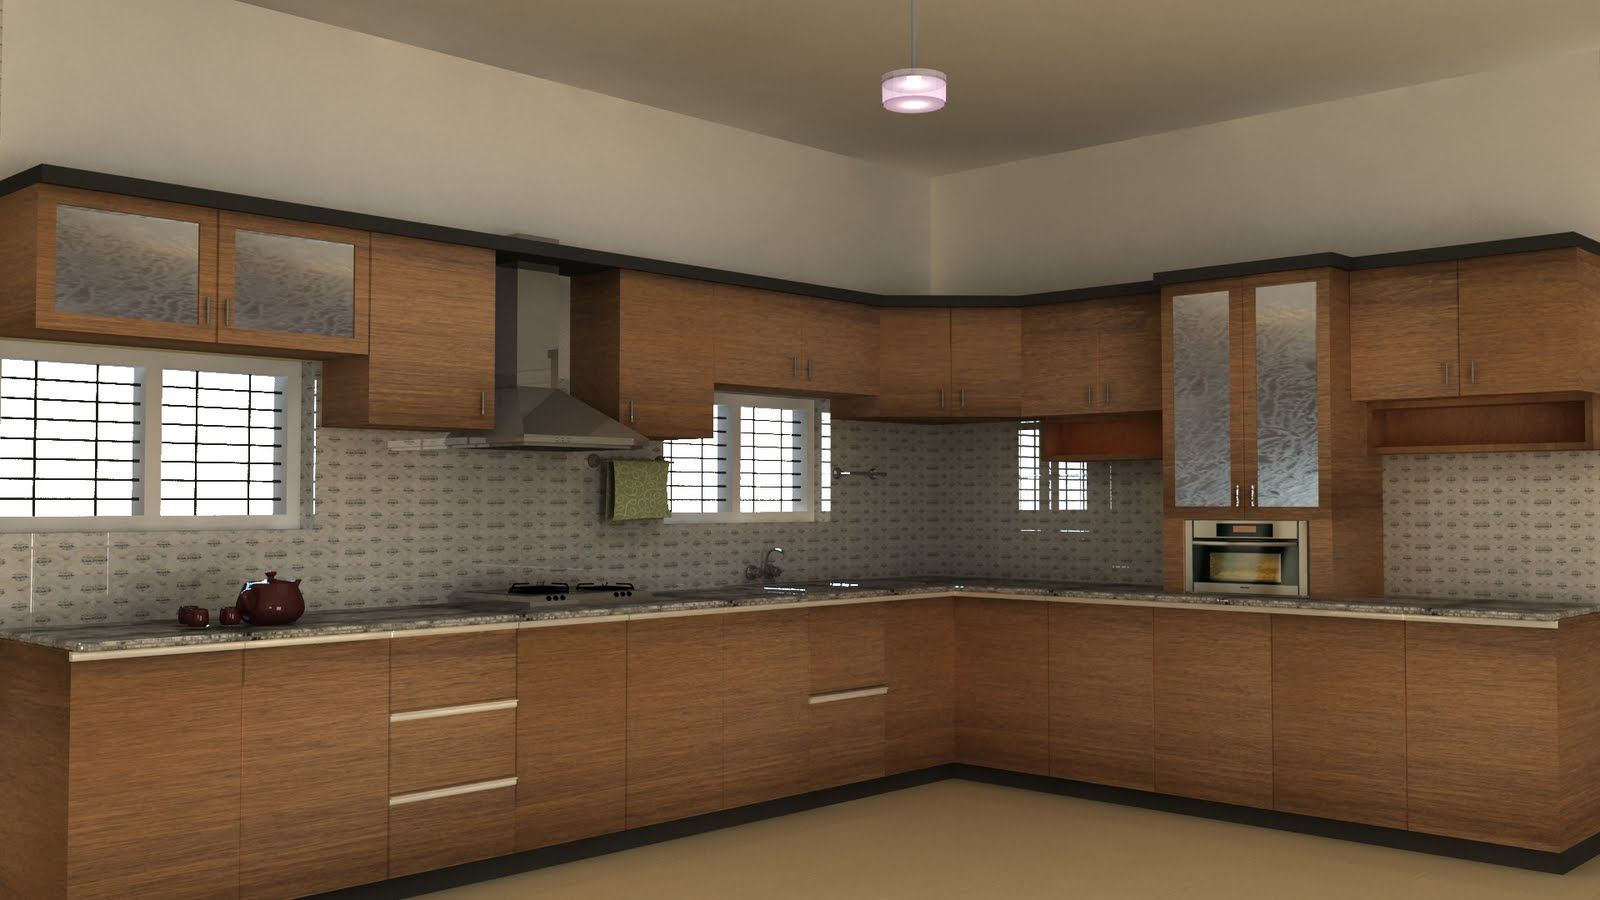 kerala style kitchen design picture. Modern Kerala Home Interior Designs Kitchen Design Ideas kitchen interiors interior design